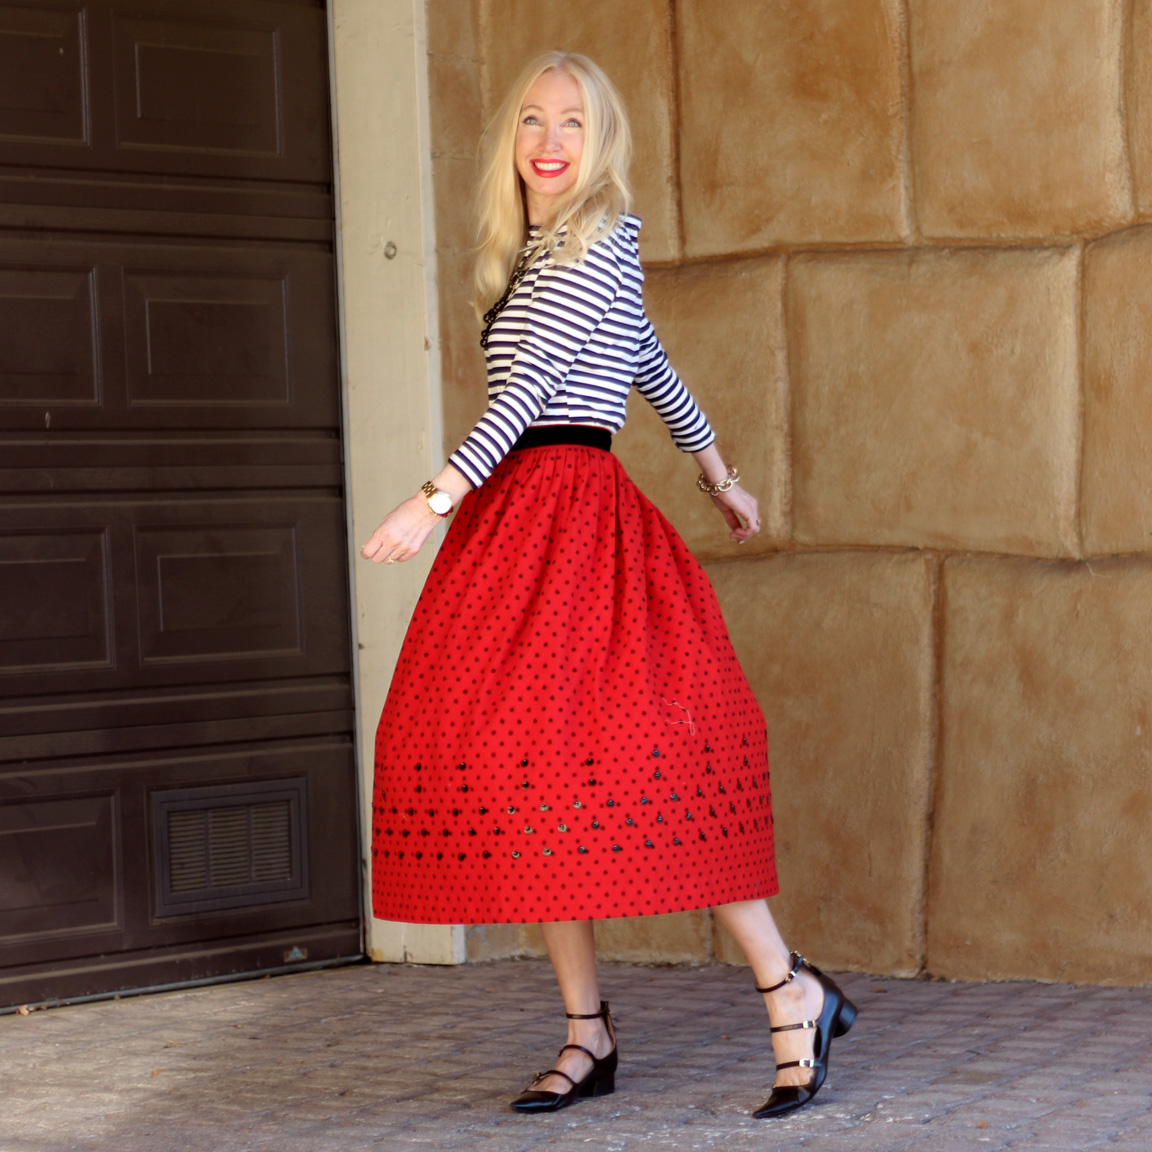 zara pointed toe flats, vintage midi skirt, currently crushing